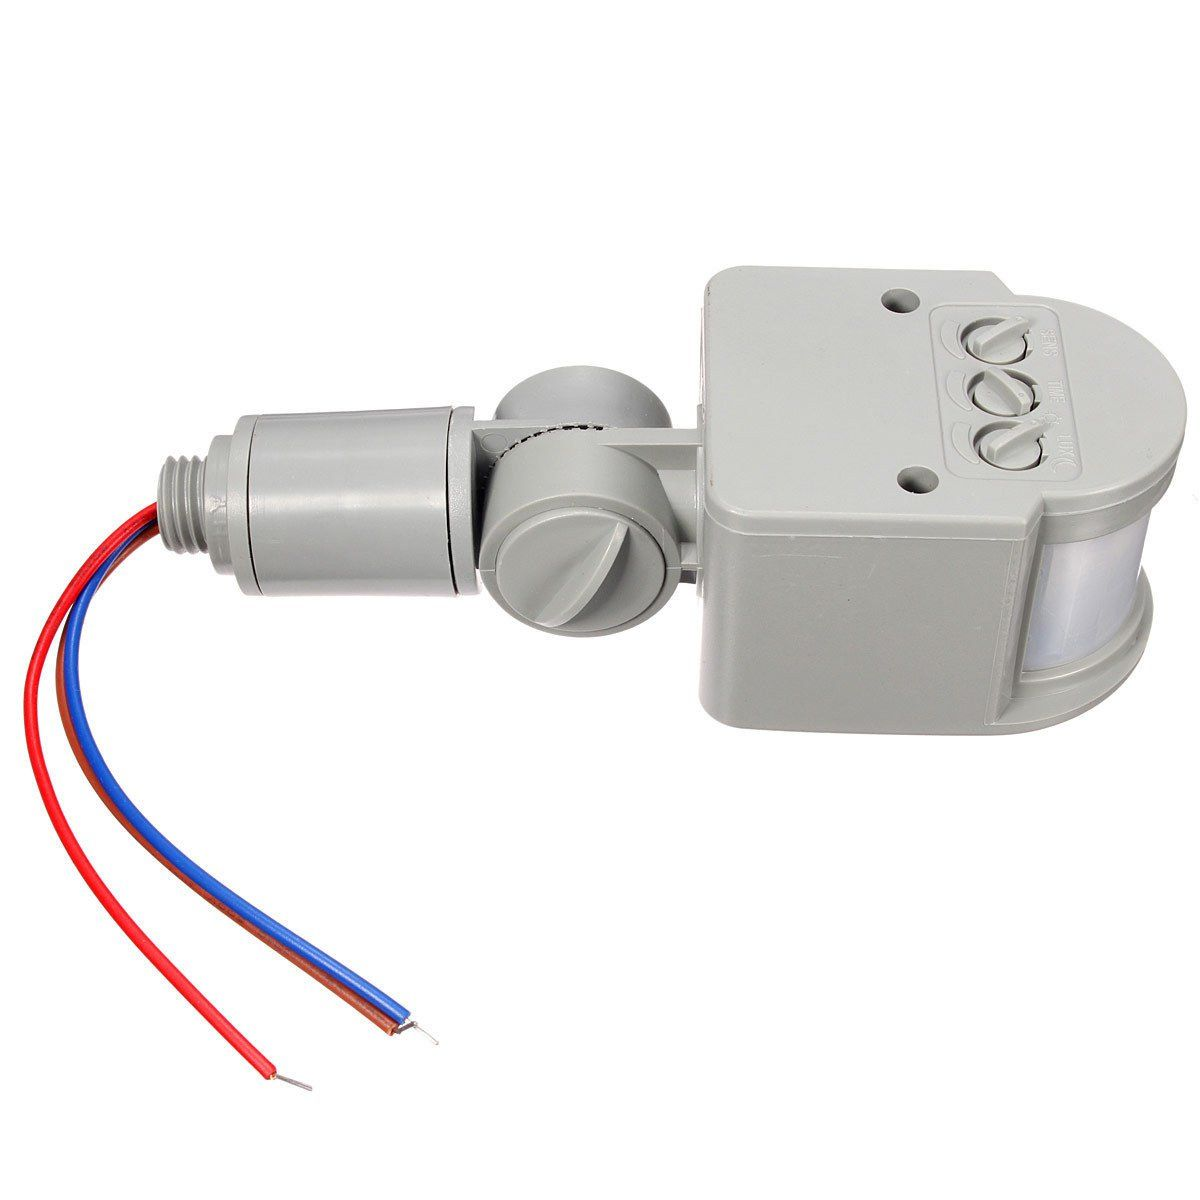 Dc 12v Automatic Ir Infrared Pir Motion Sensor Switch Led For Light Lamp Grey One Pcs Led Lights Motion Sensor Infrared